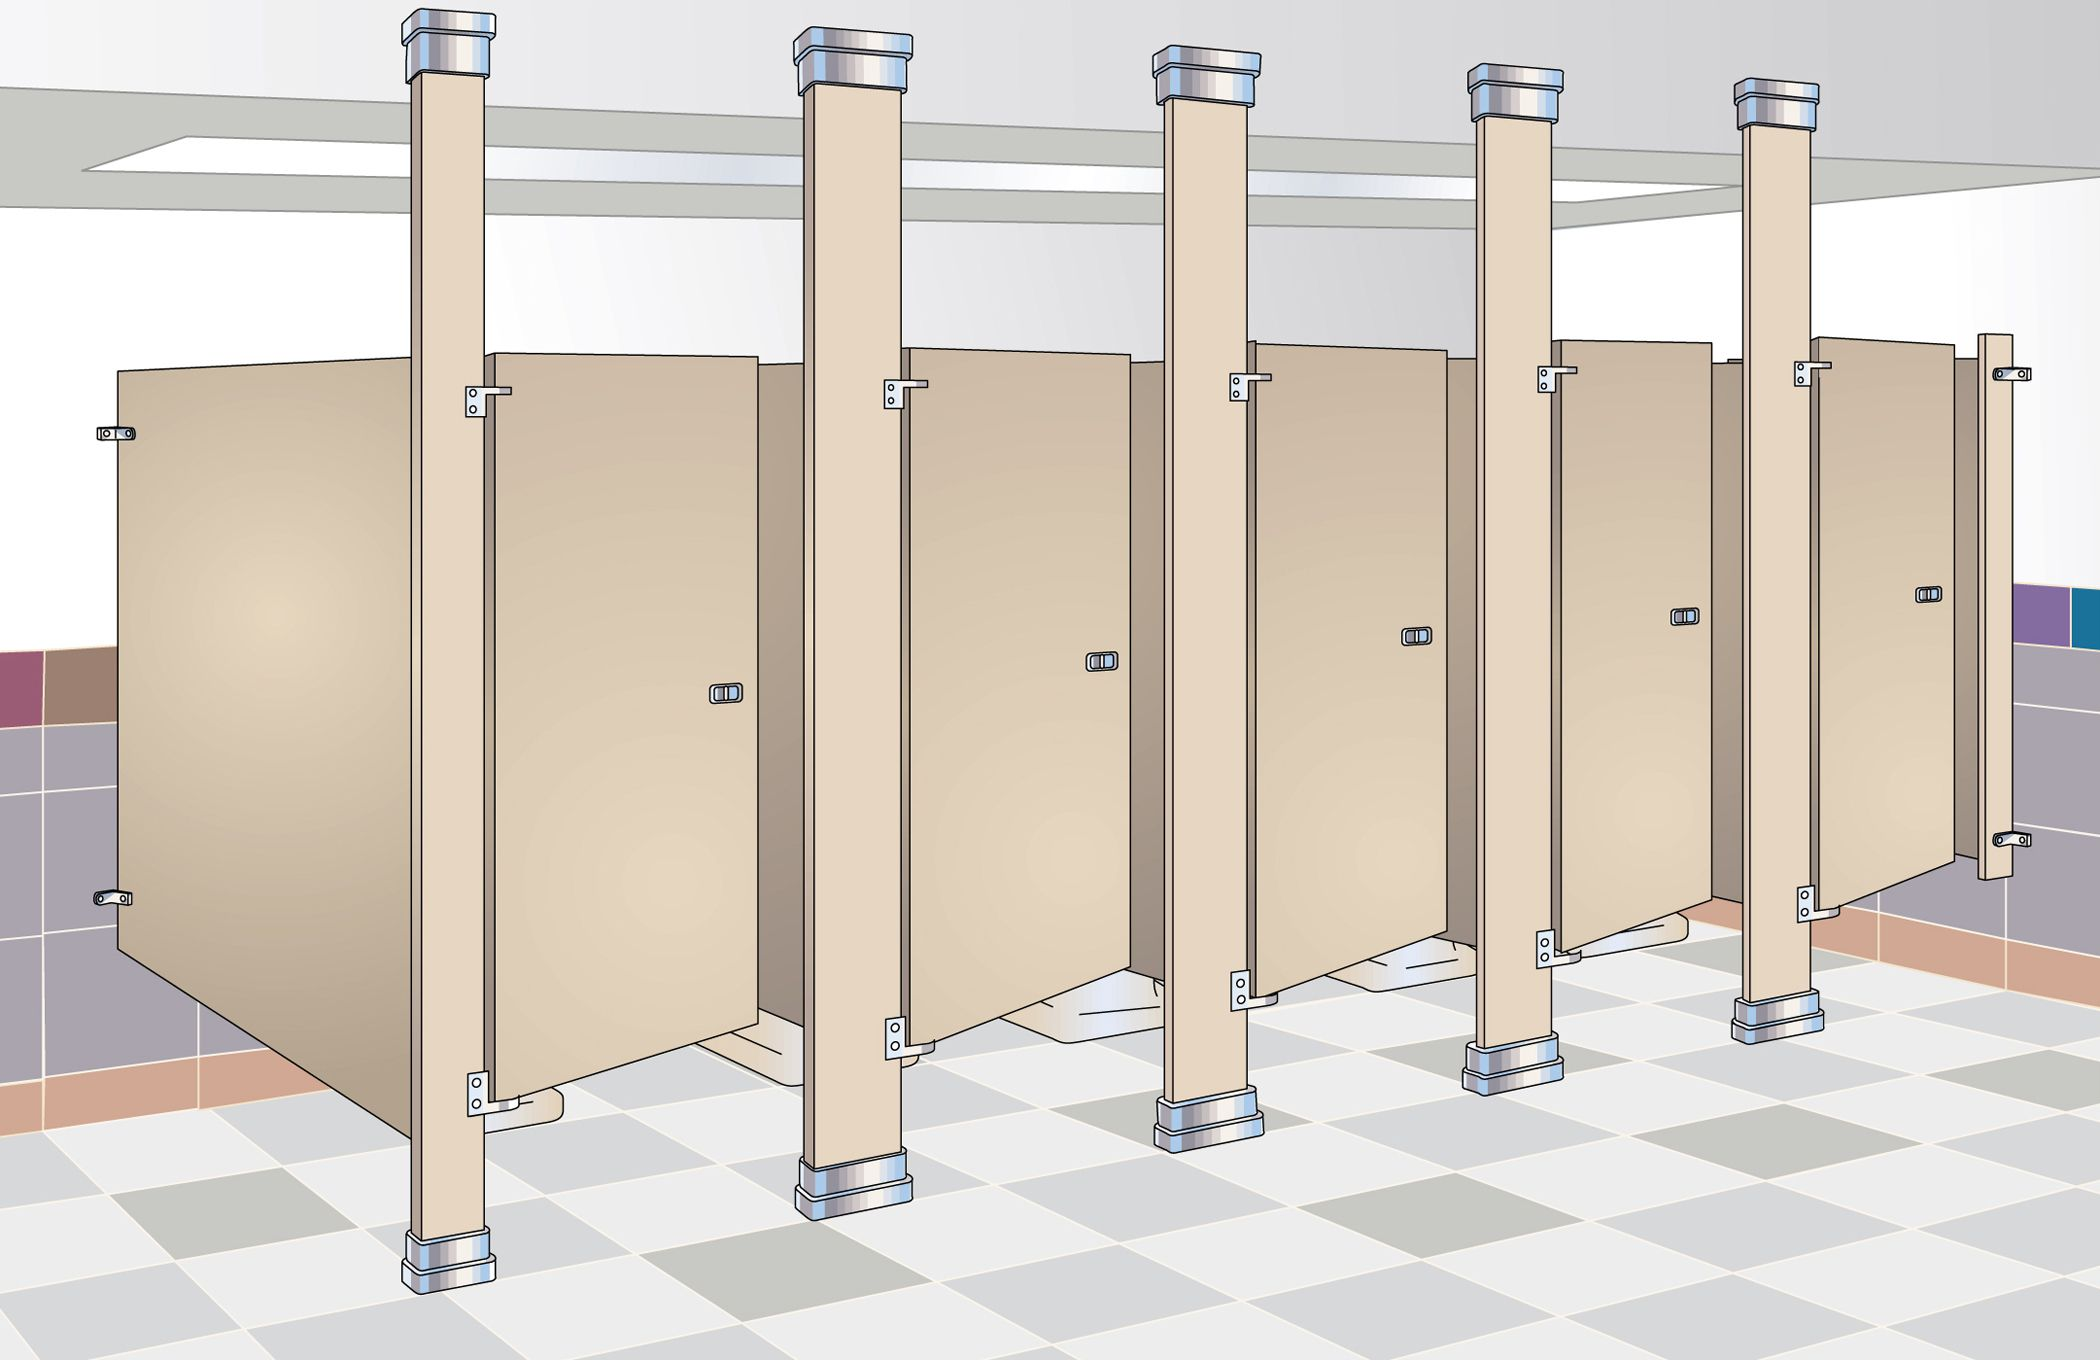 Commercial Bathroom Stalls Hardware bathroom stall height | ideas | pinterest | bathroom stall